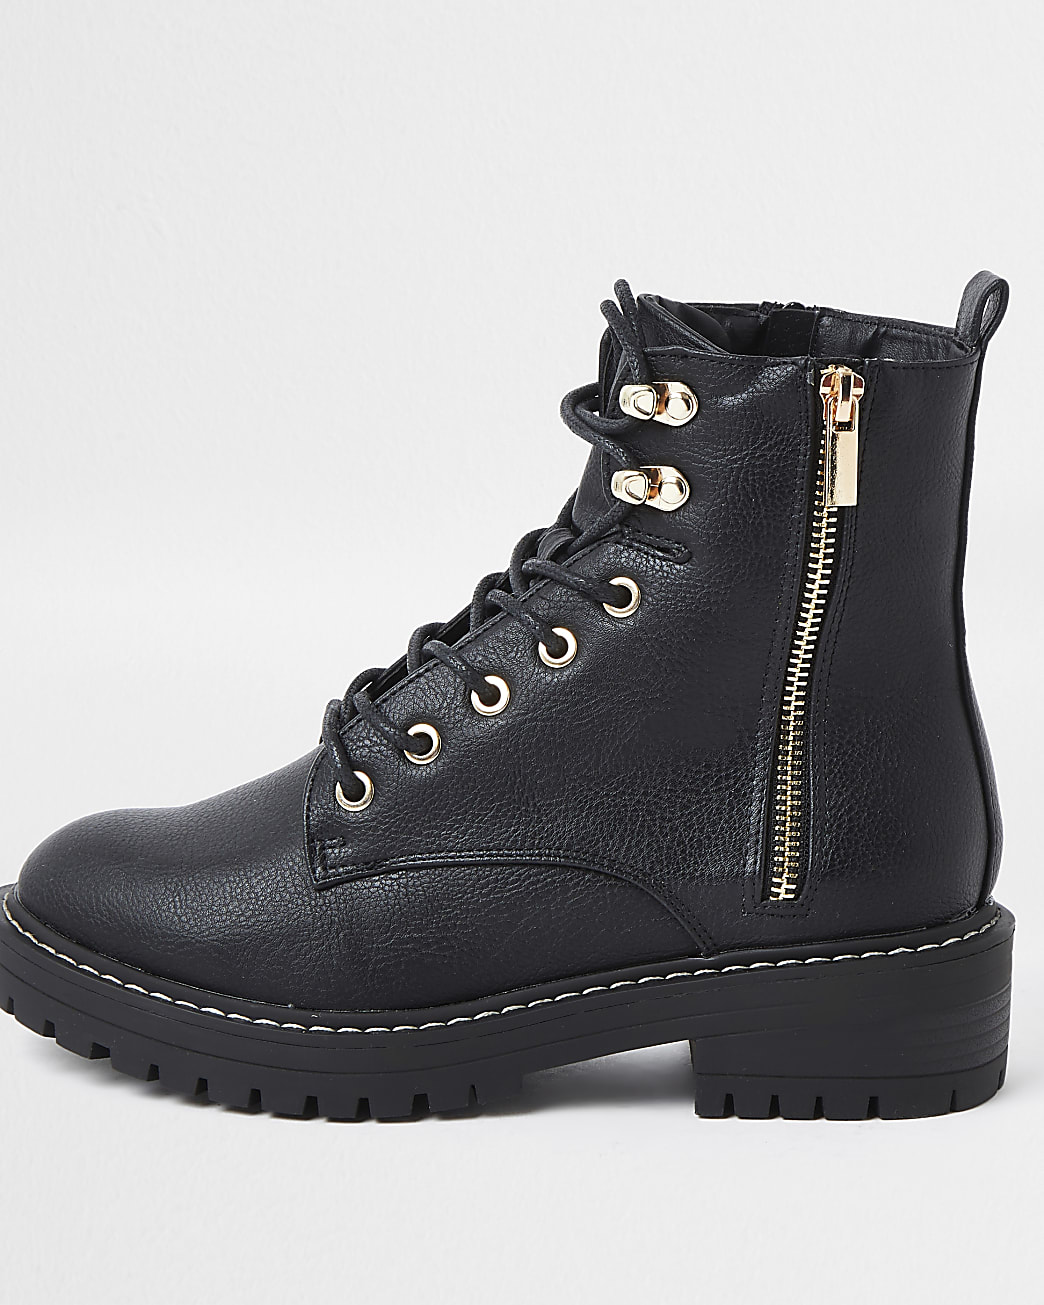 Black faux leather lace up ankle boots